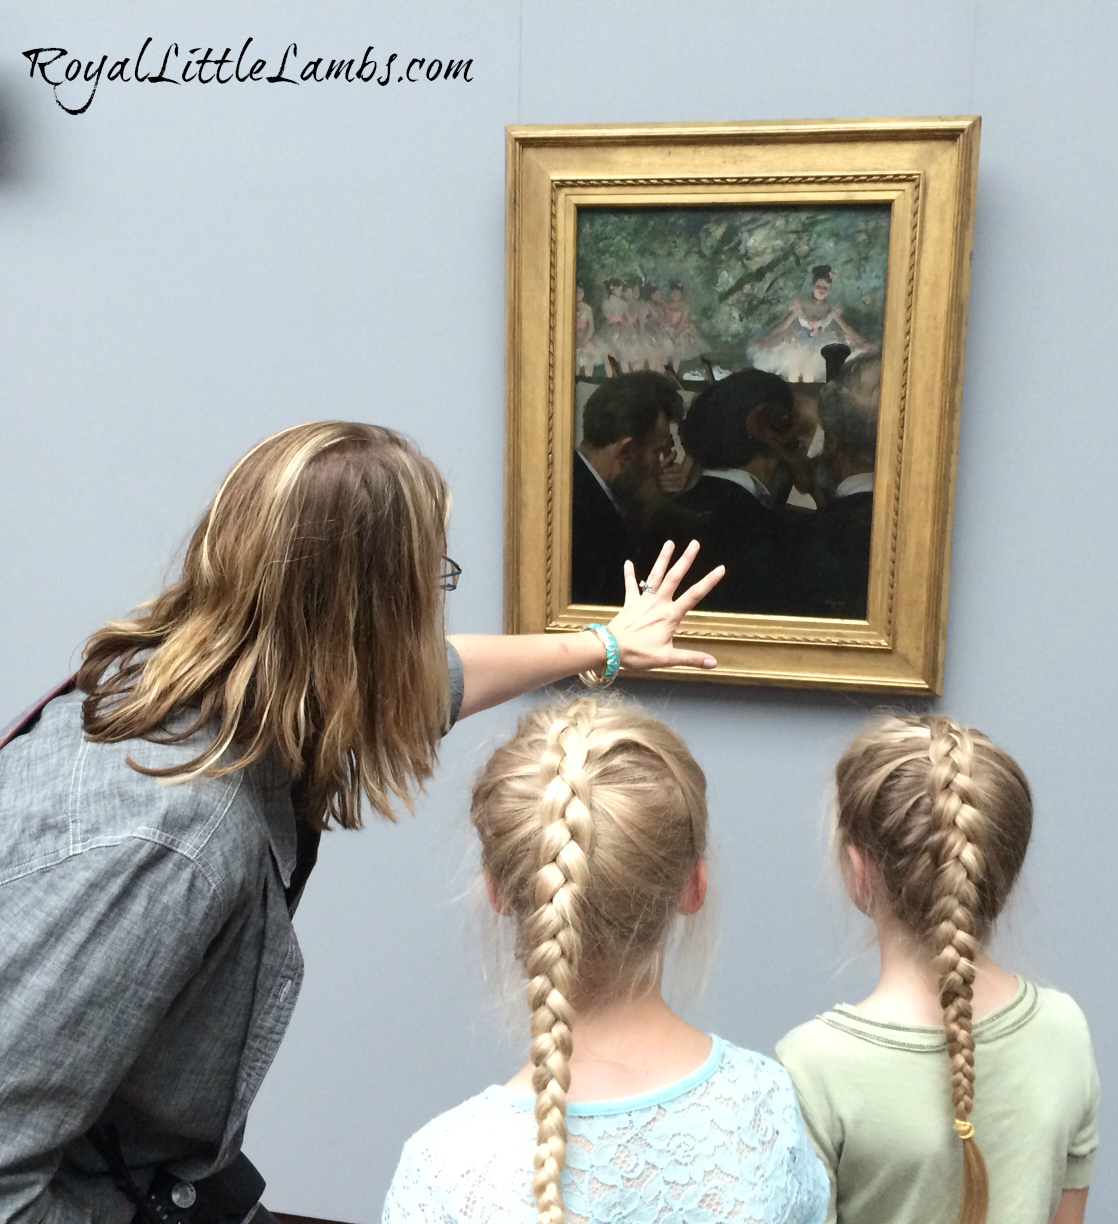 Teaching Perspective with Degas